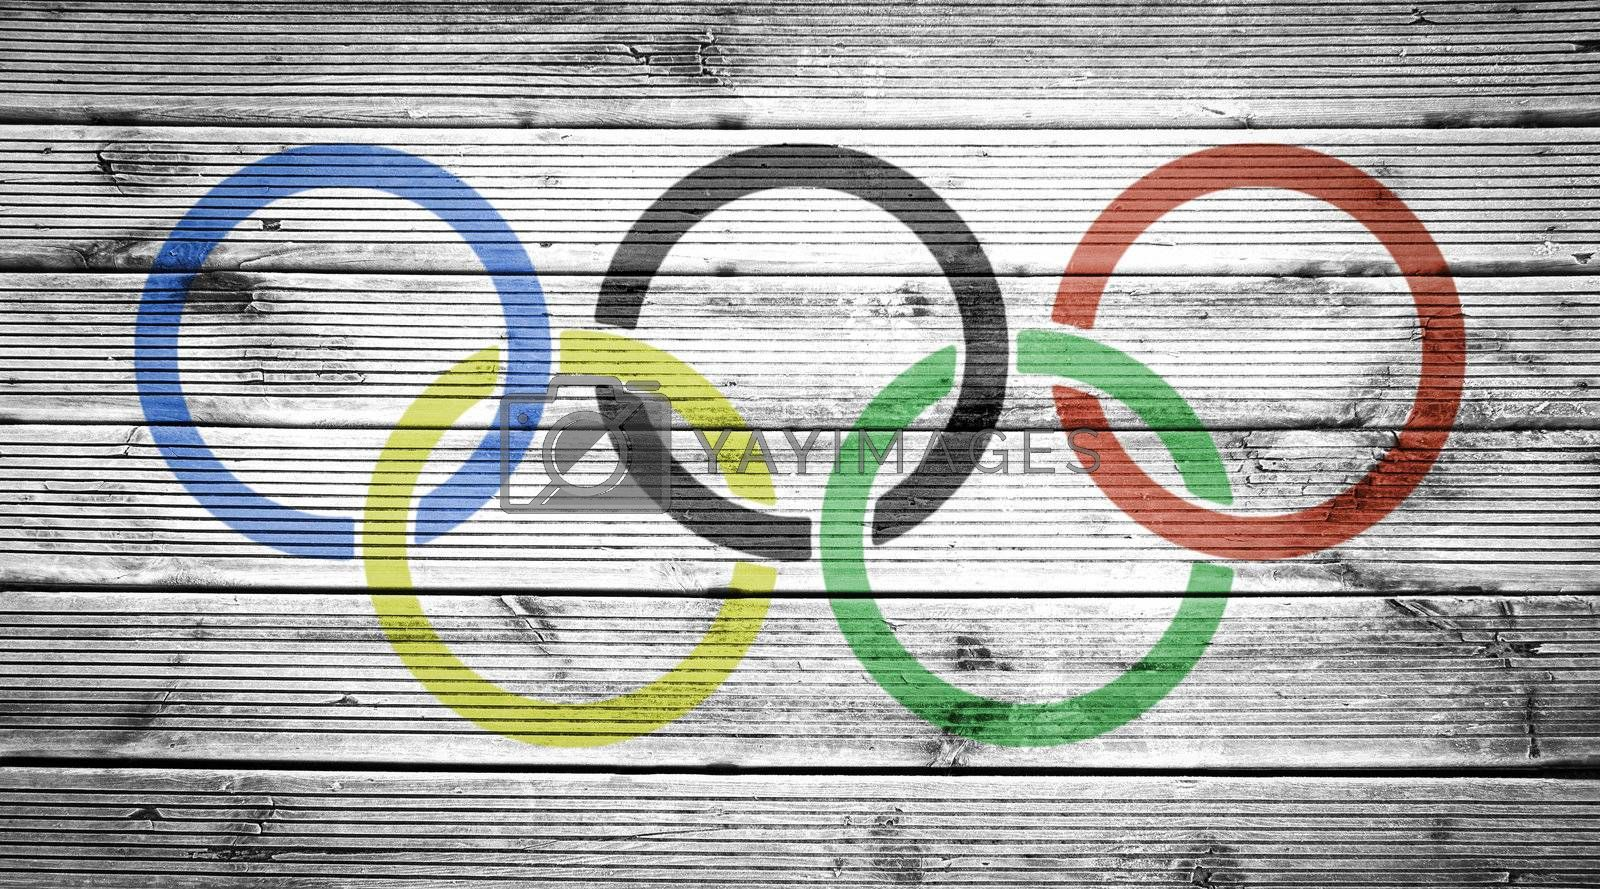 Natural wood planks texture background with the colors of the flag of Olimpic Games